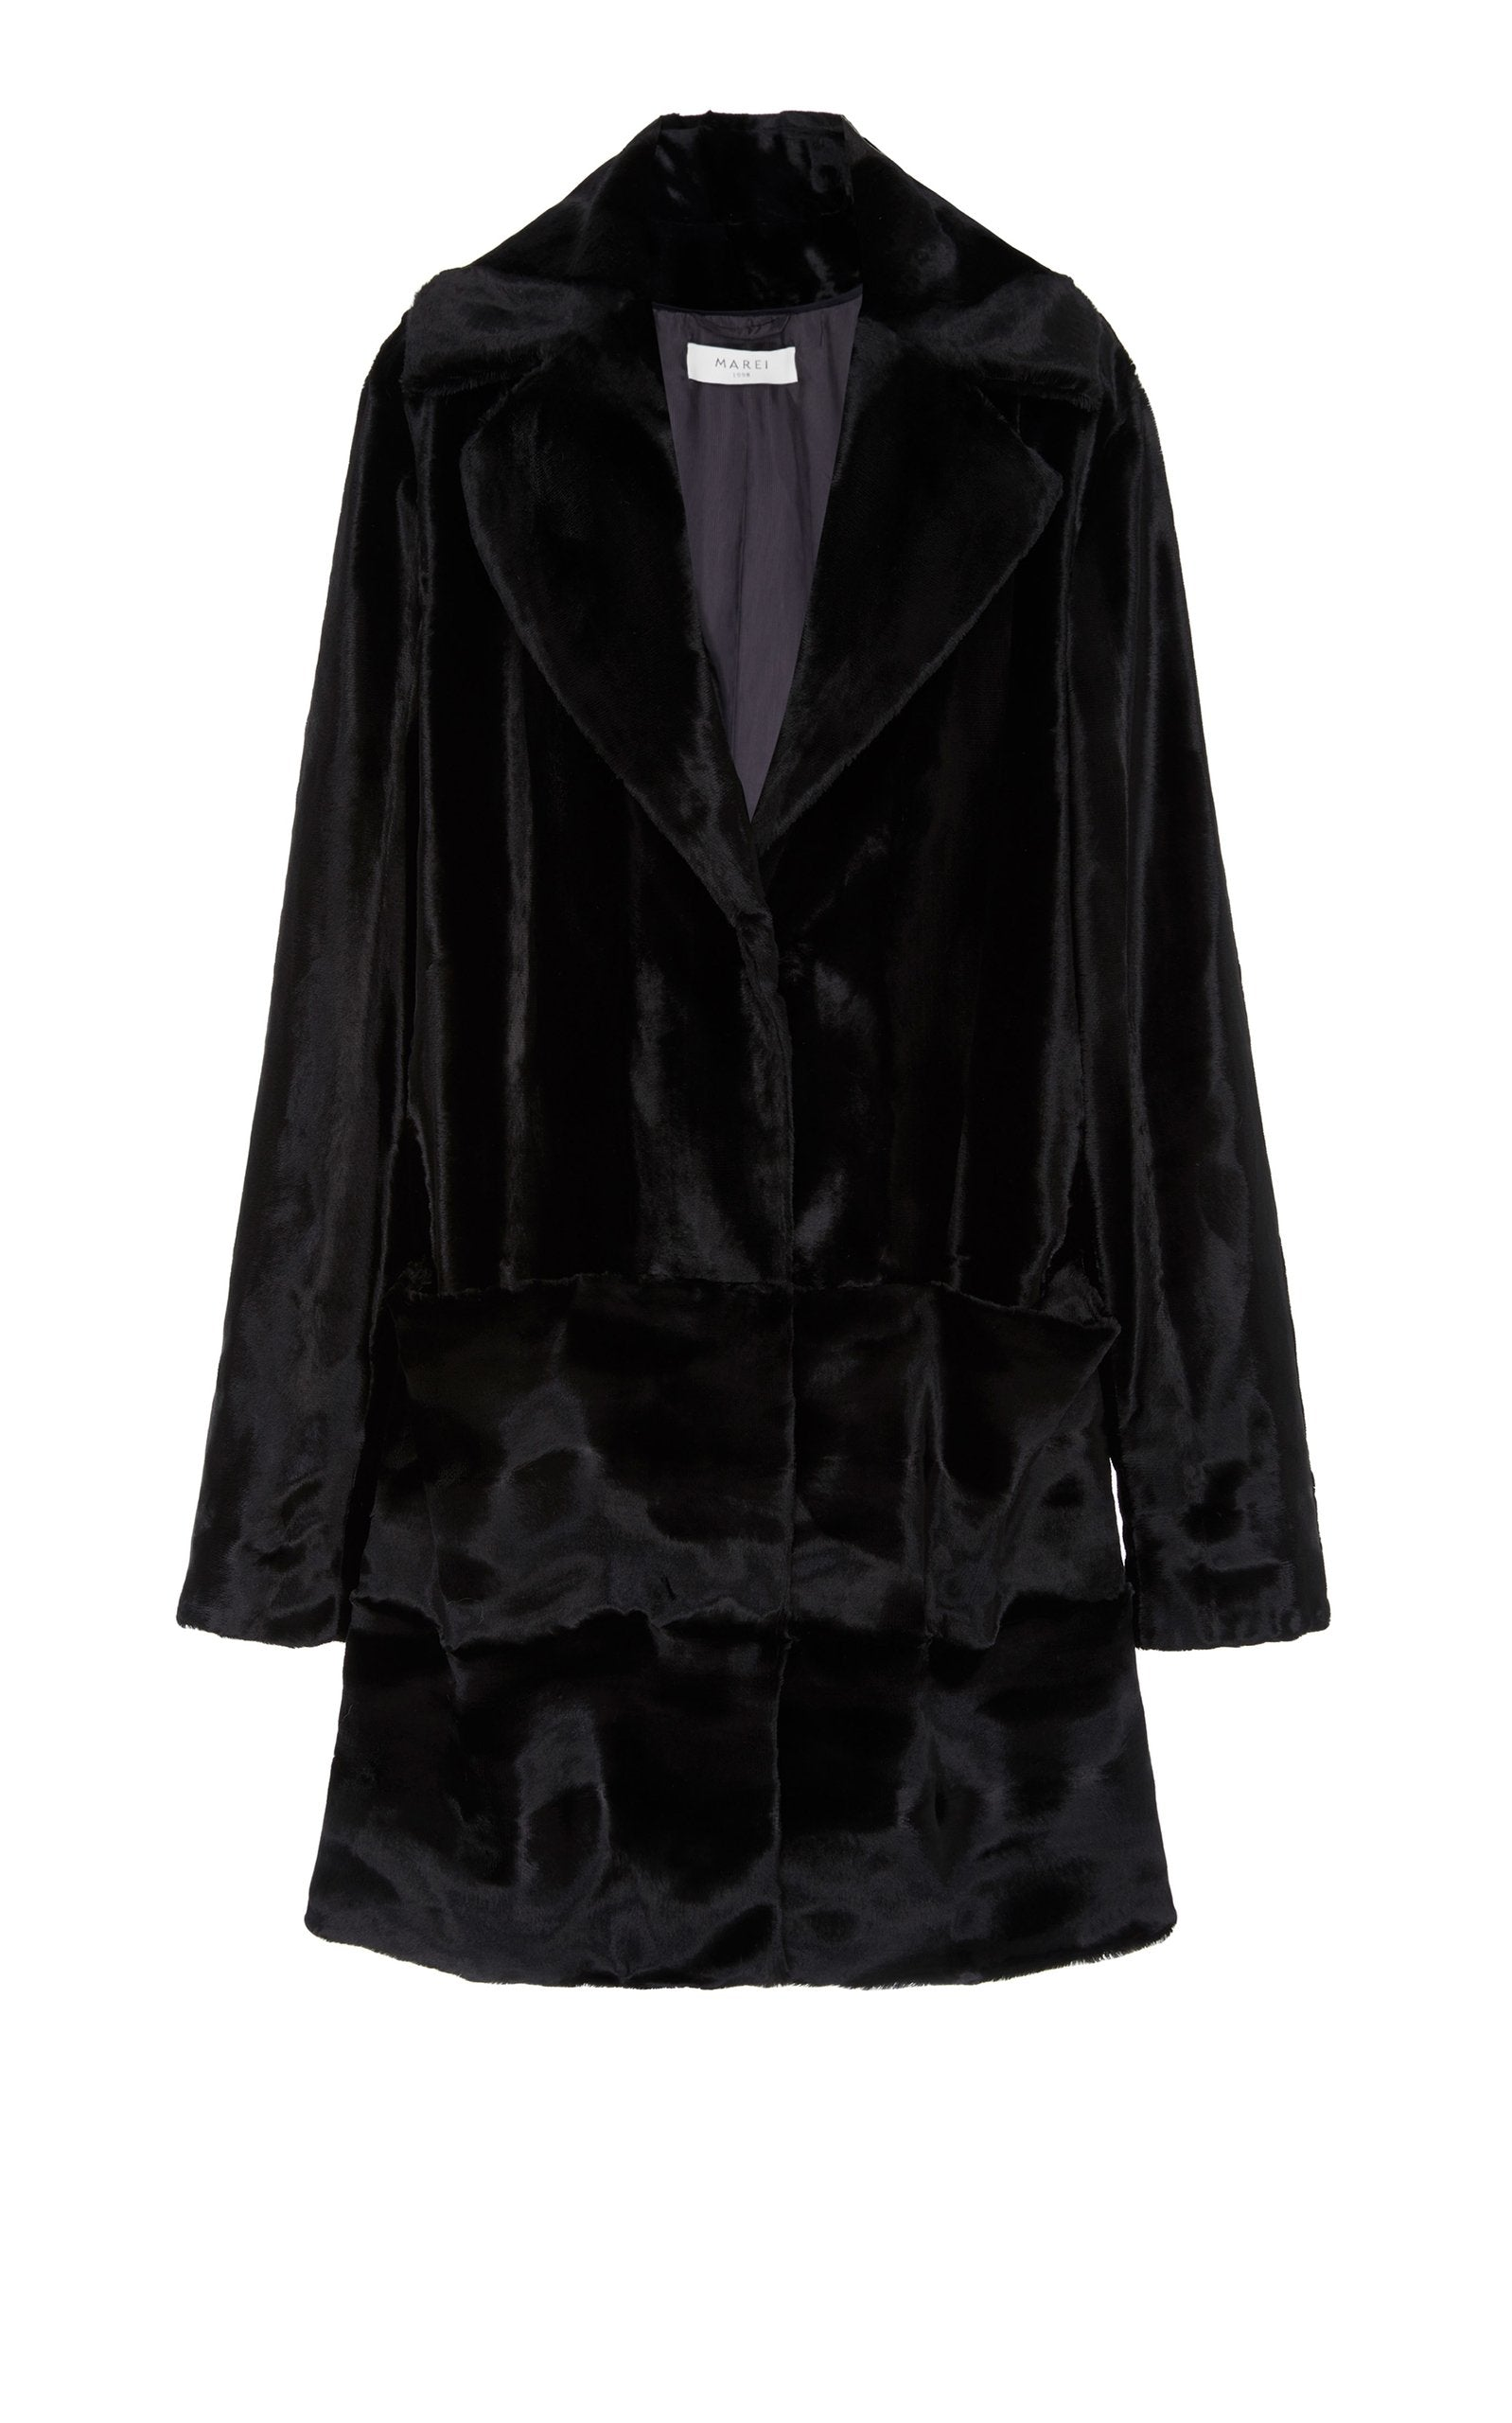 A Packshot Of Marei1998's Datura Long Faux Fur Coat In Black Color. Featuring A Slight A-Lined Silhouette, It Is Made From The Fluffiest Long Pile Faux Fur. Front View.